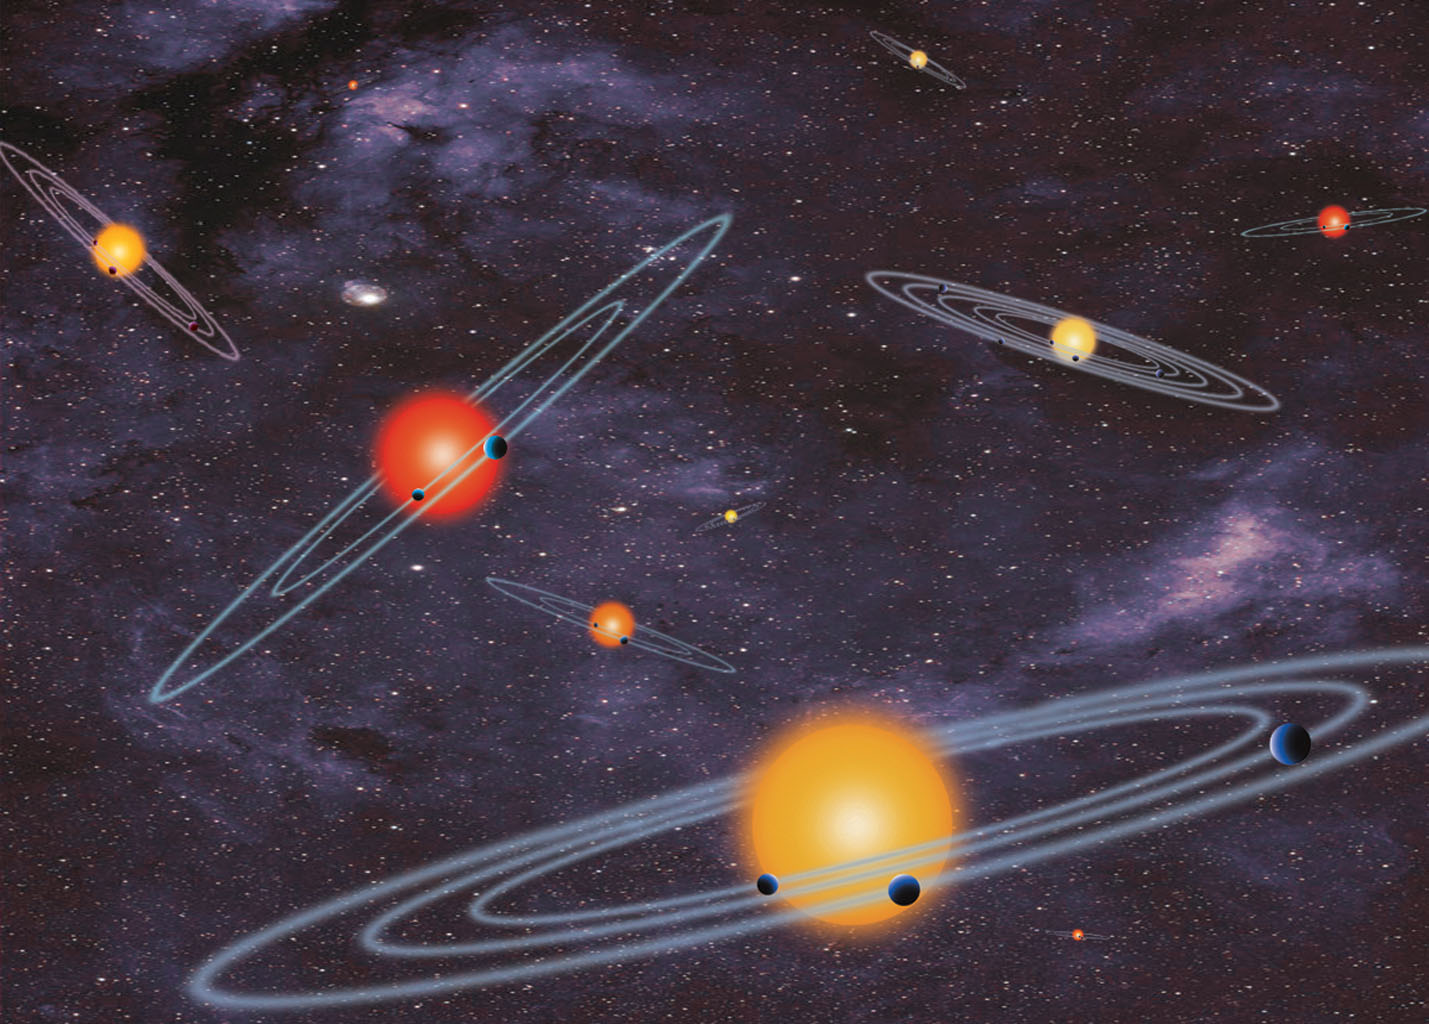 This illustration shows the unusual orbit of planet Kepler-413b around a close pair of orange and red dwarf stars. The planet's 66-day orbit is tilted 2.5 degrees with respect to the plane of the binary stars' orbit.